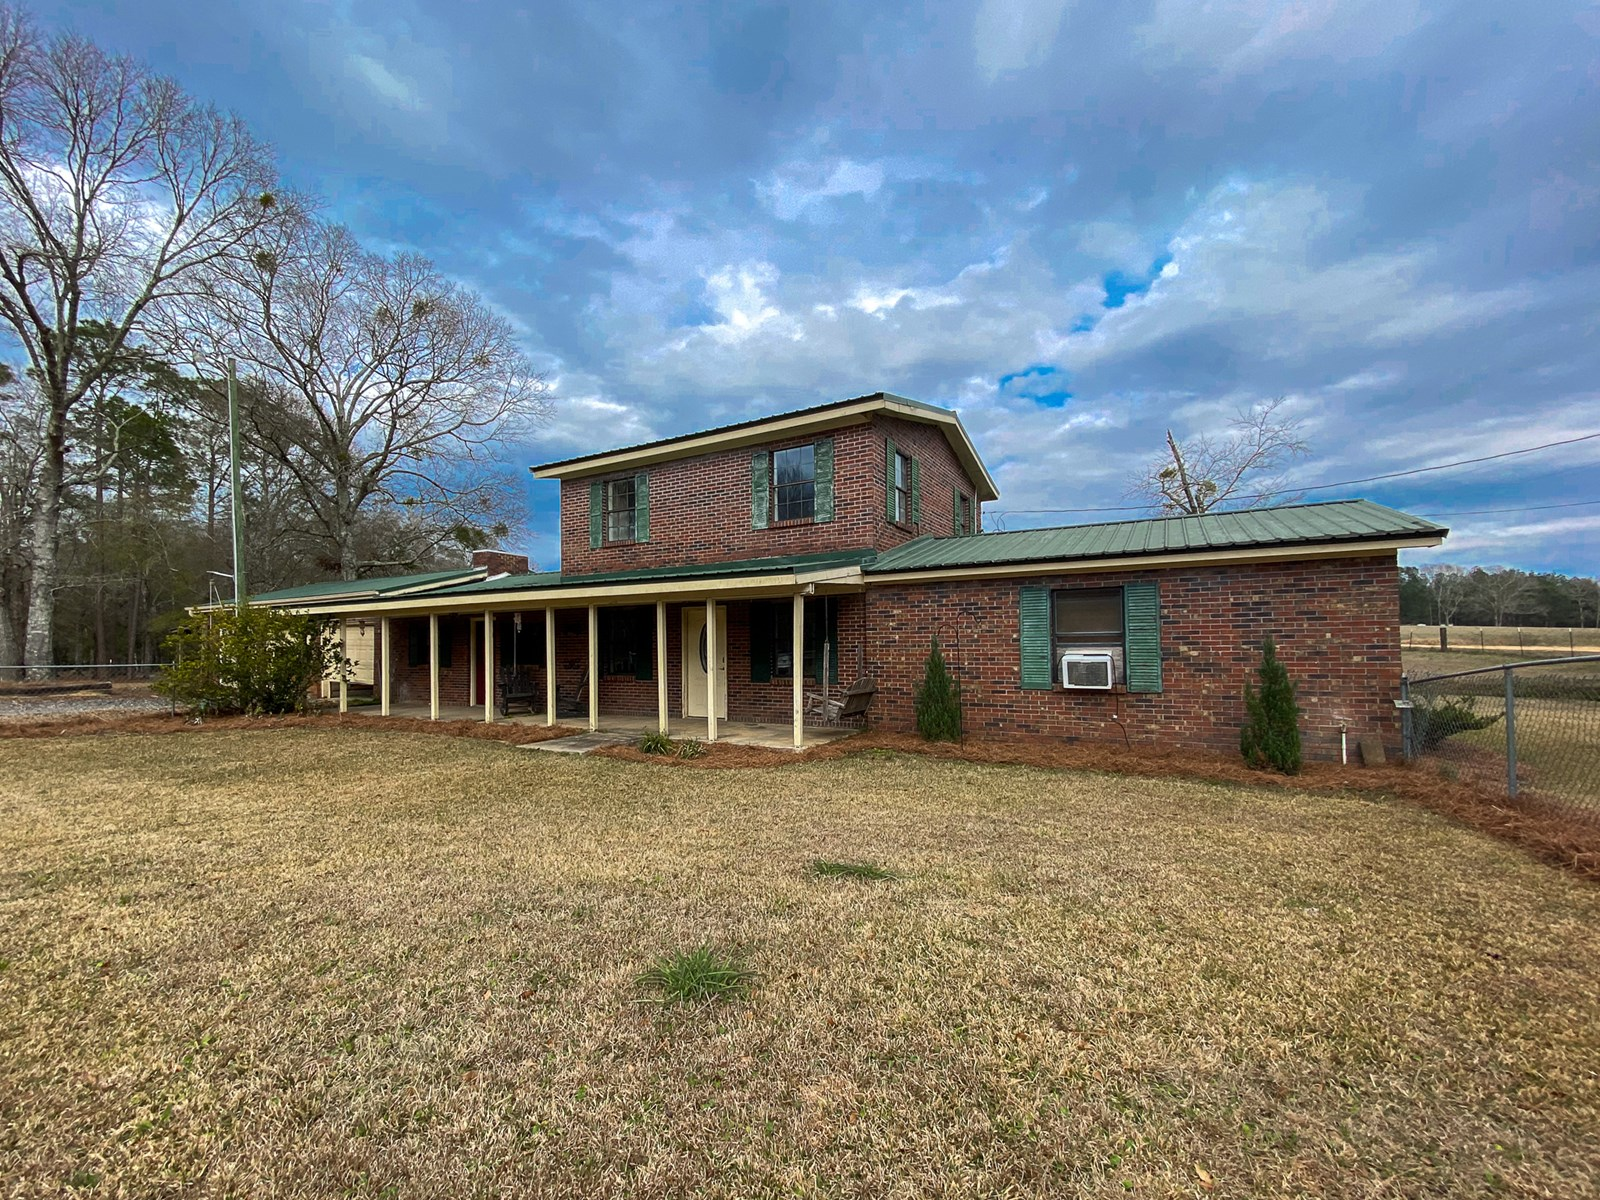 Home in Country w/ Land, Pond & Room for Horses Samson, AL